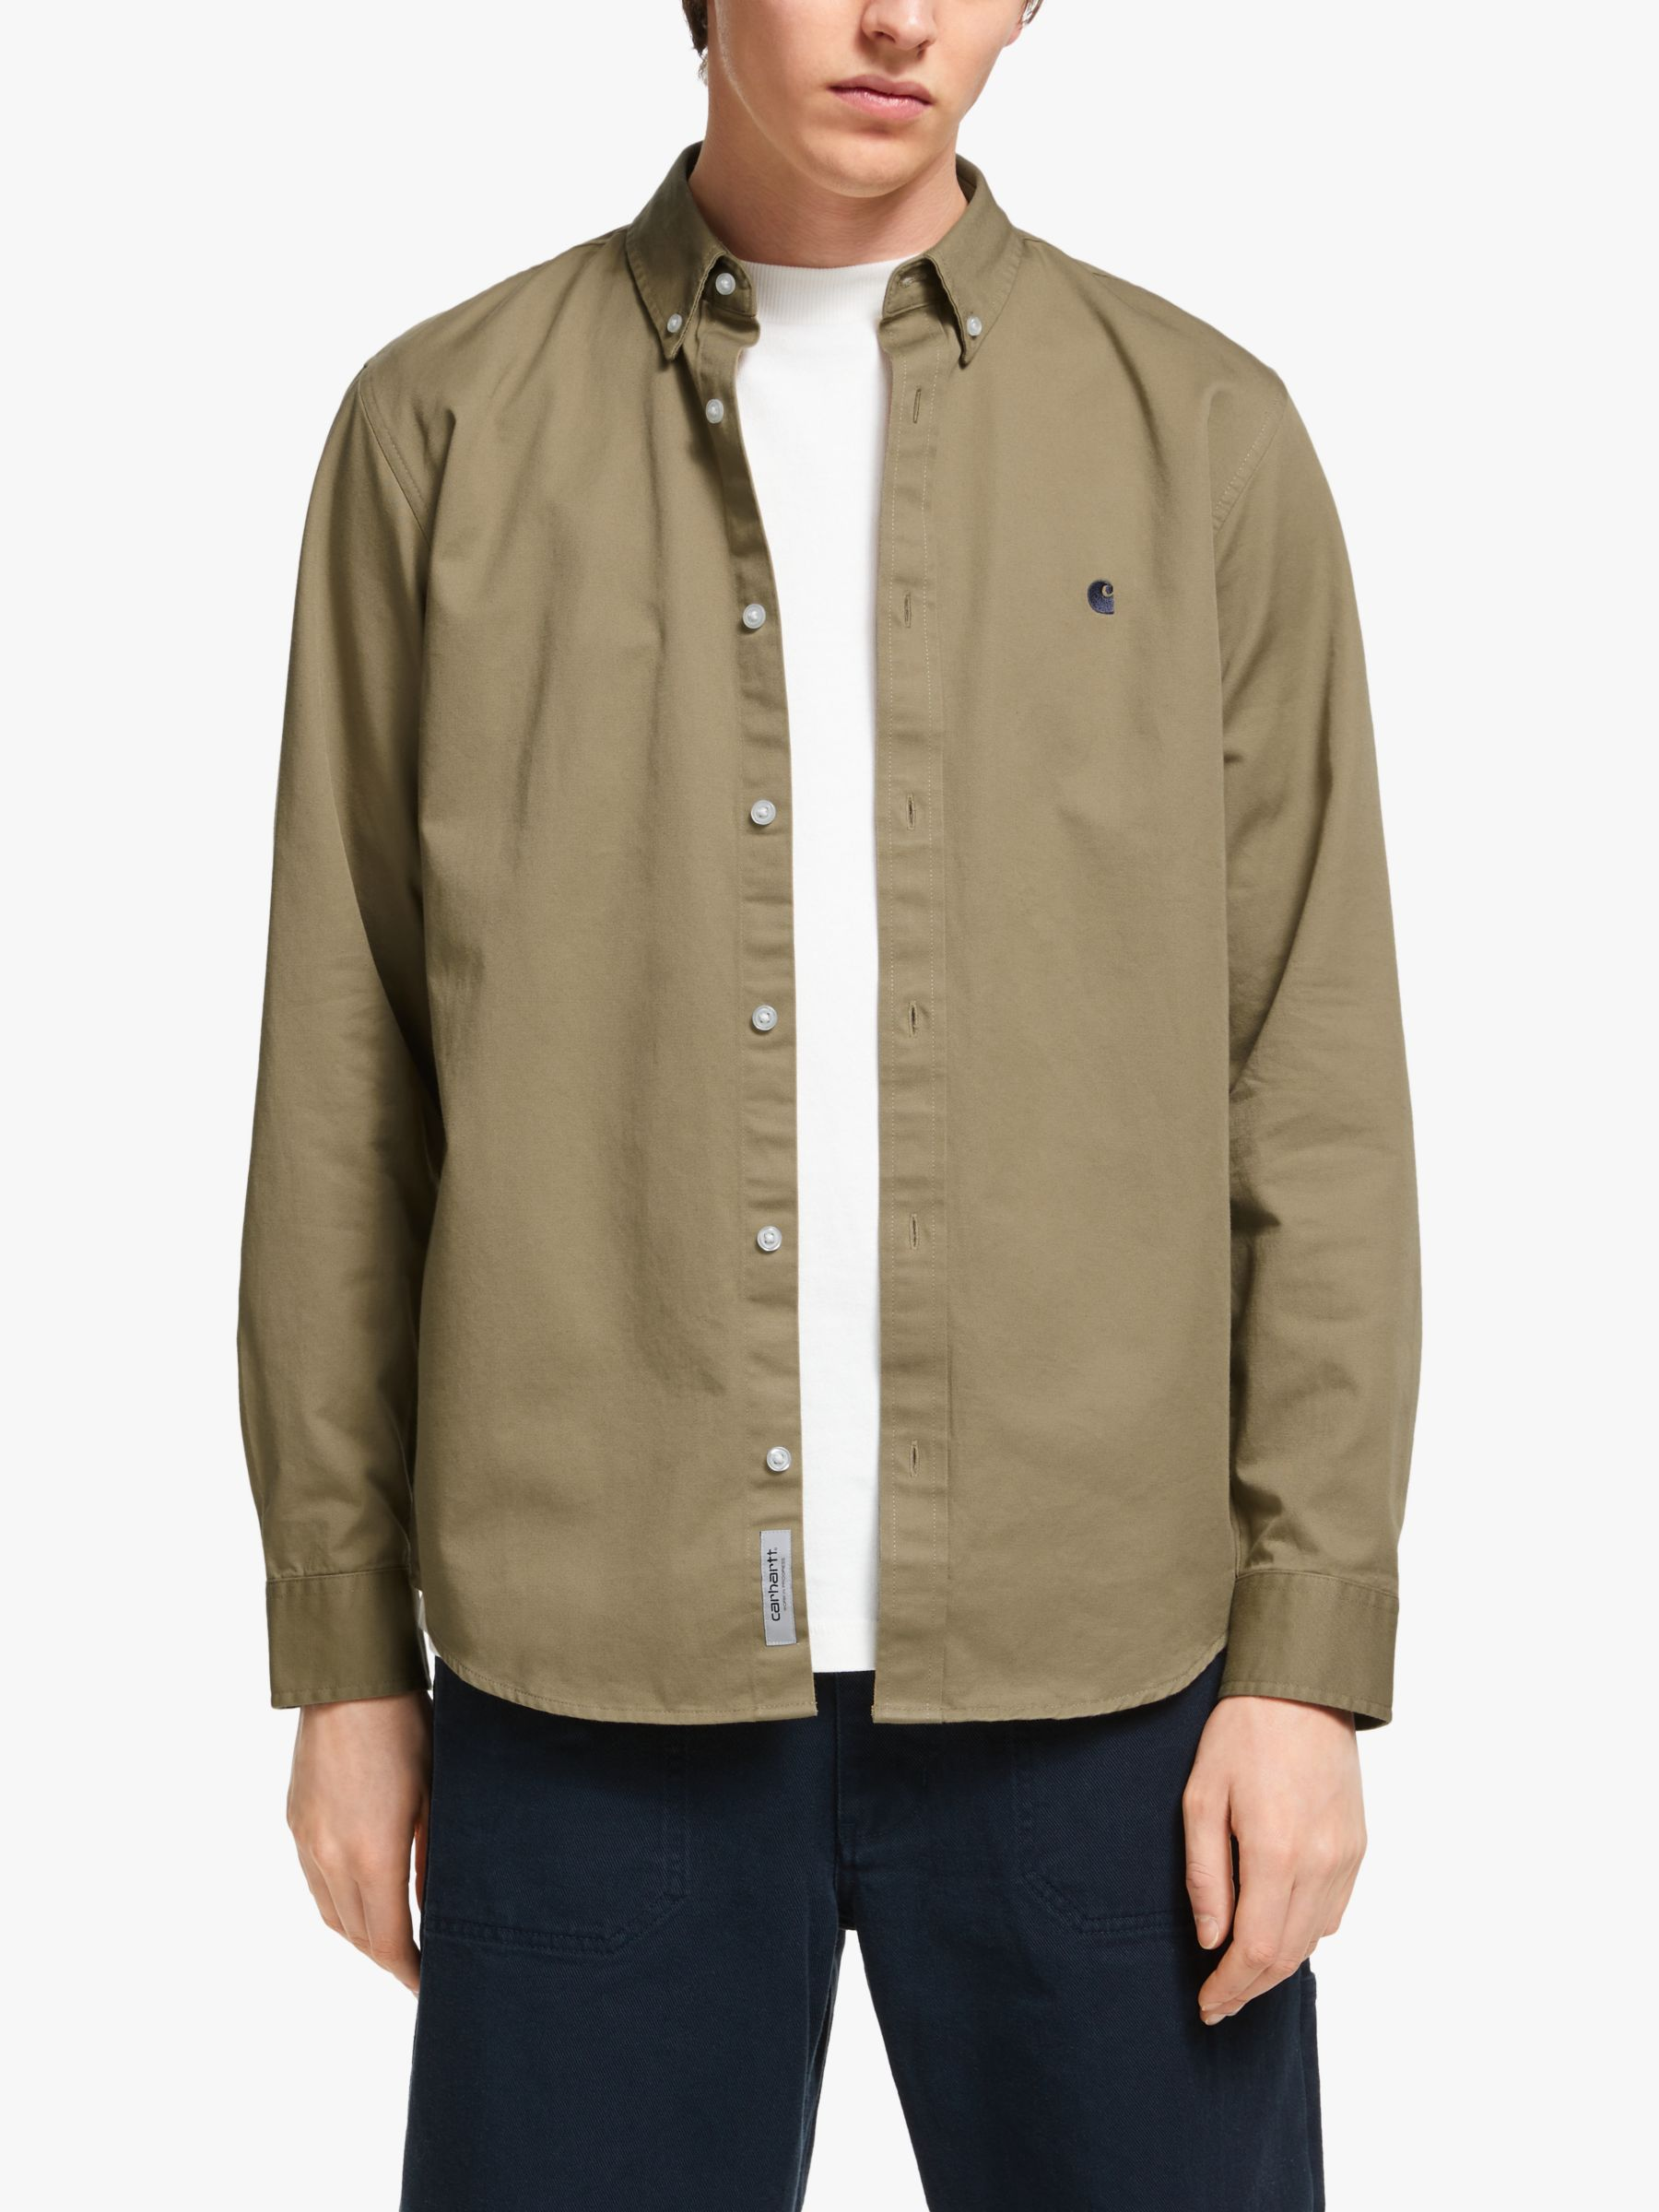 Carhartt WIP Carhartt WIP Madison Shirt, Leather